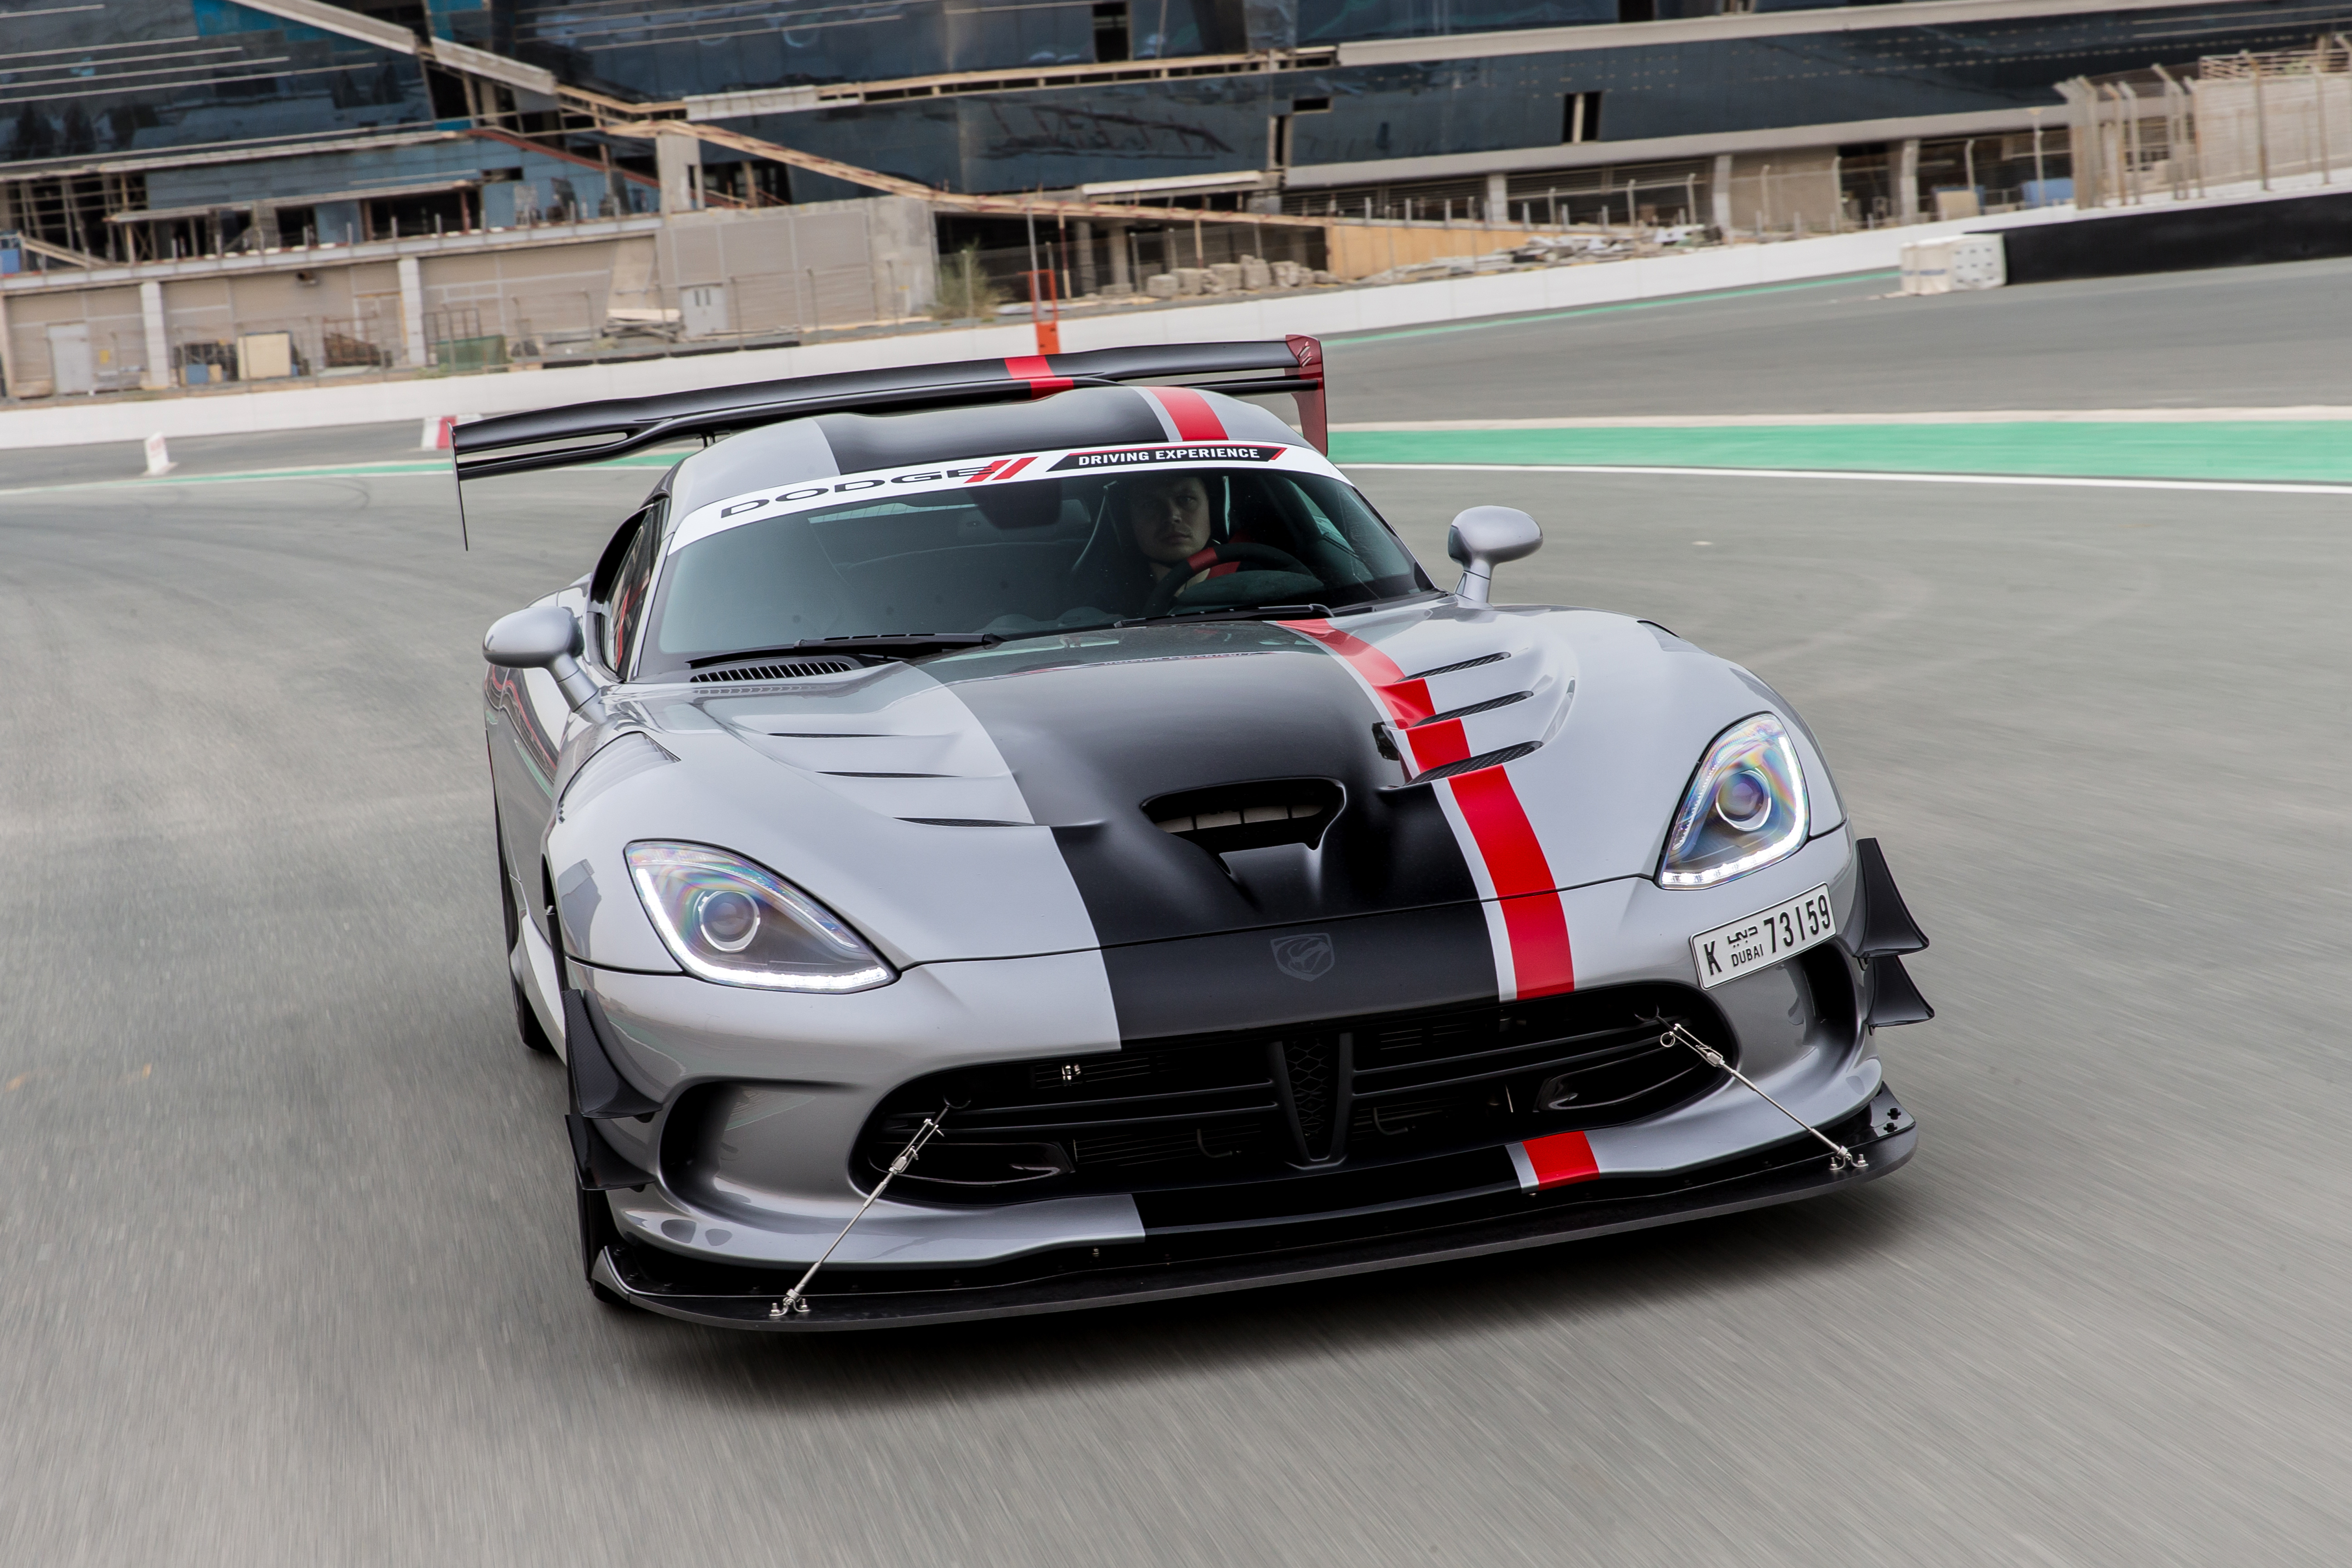 Hot laps in a 2016 Viper ACR in DubaiMotoring Middle East ...